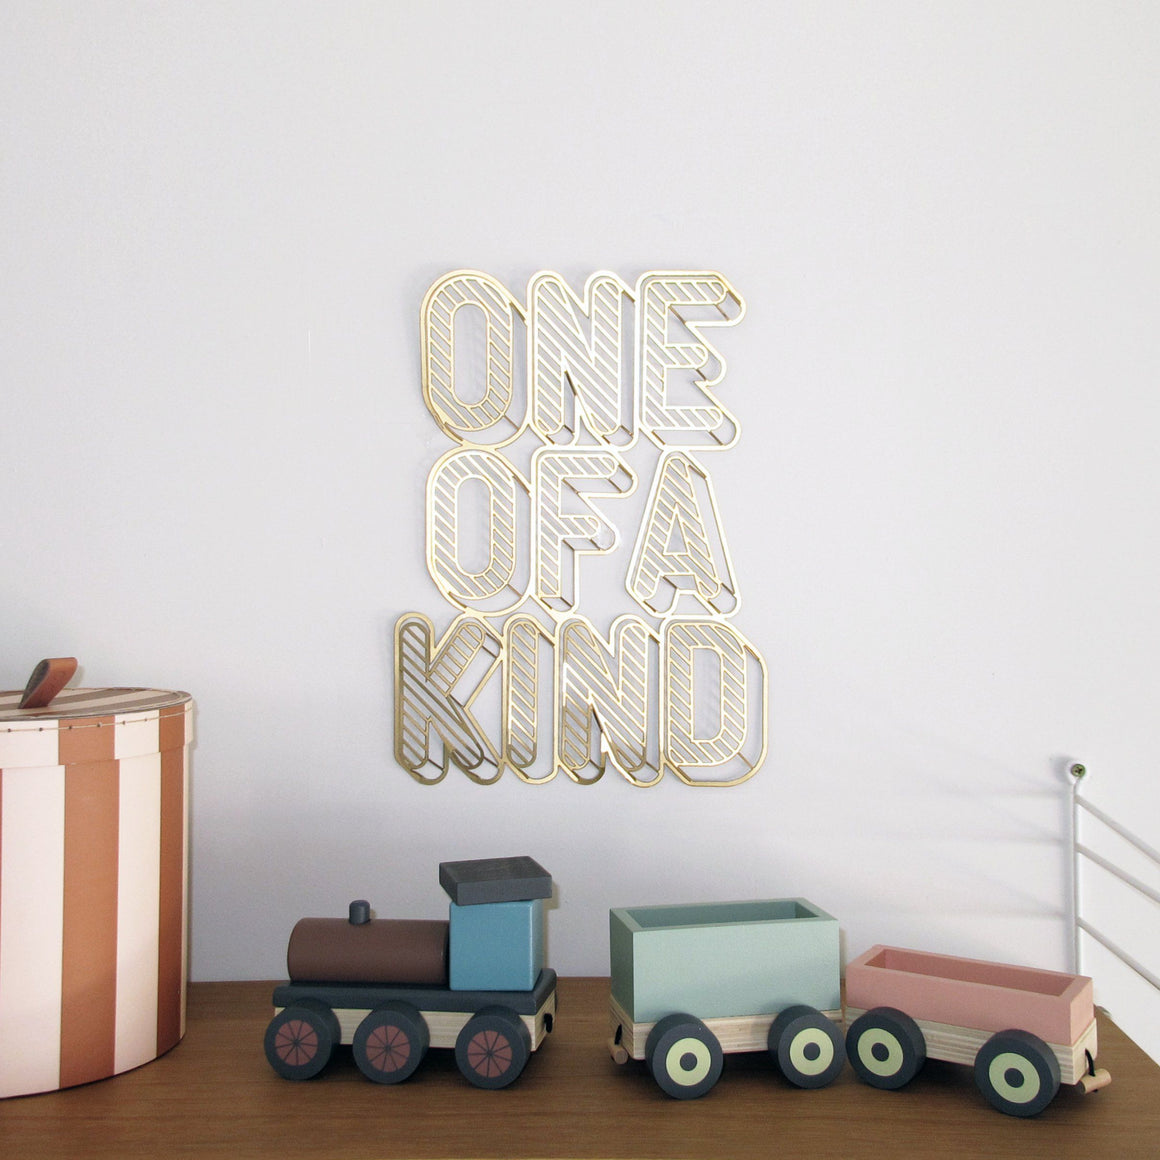 ONE OF A KIND Inspirational Phrase to hang on the wall | Wall Decor ShapeMixer